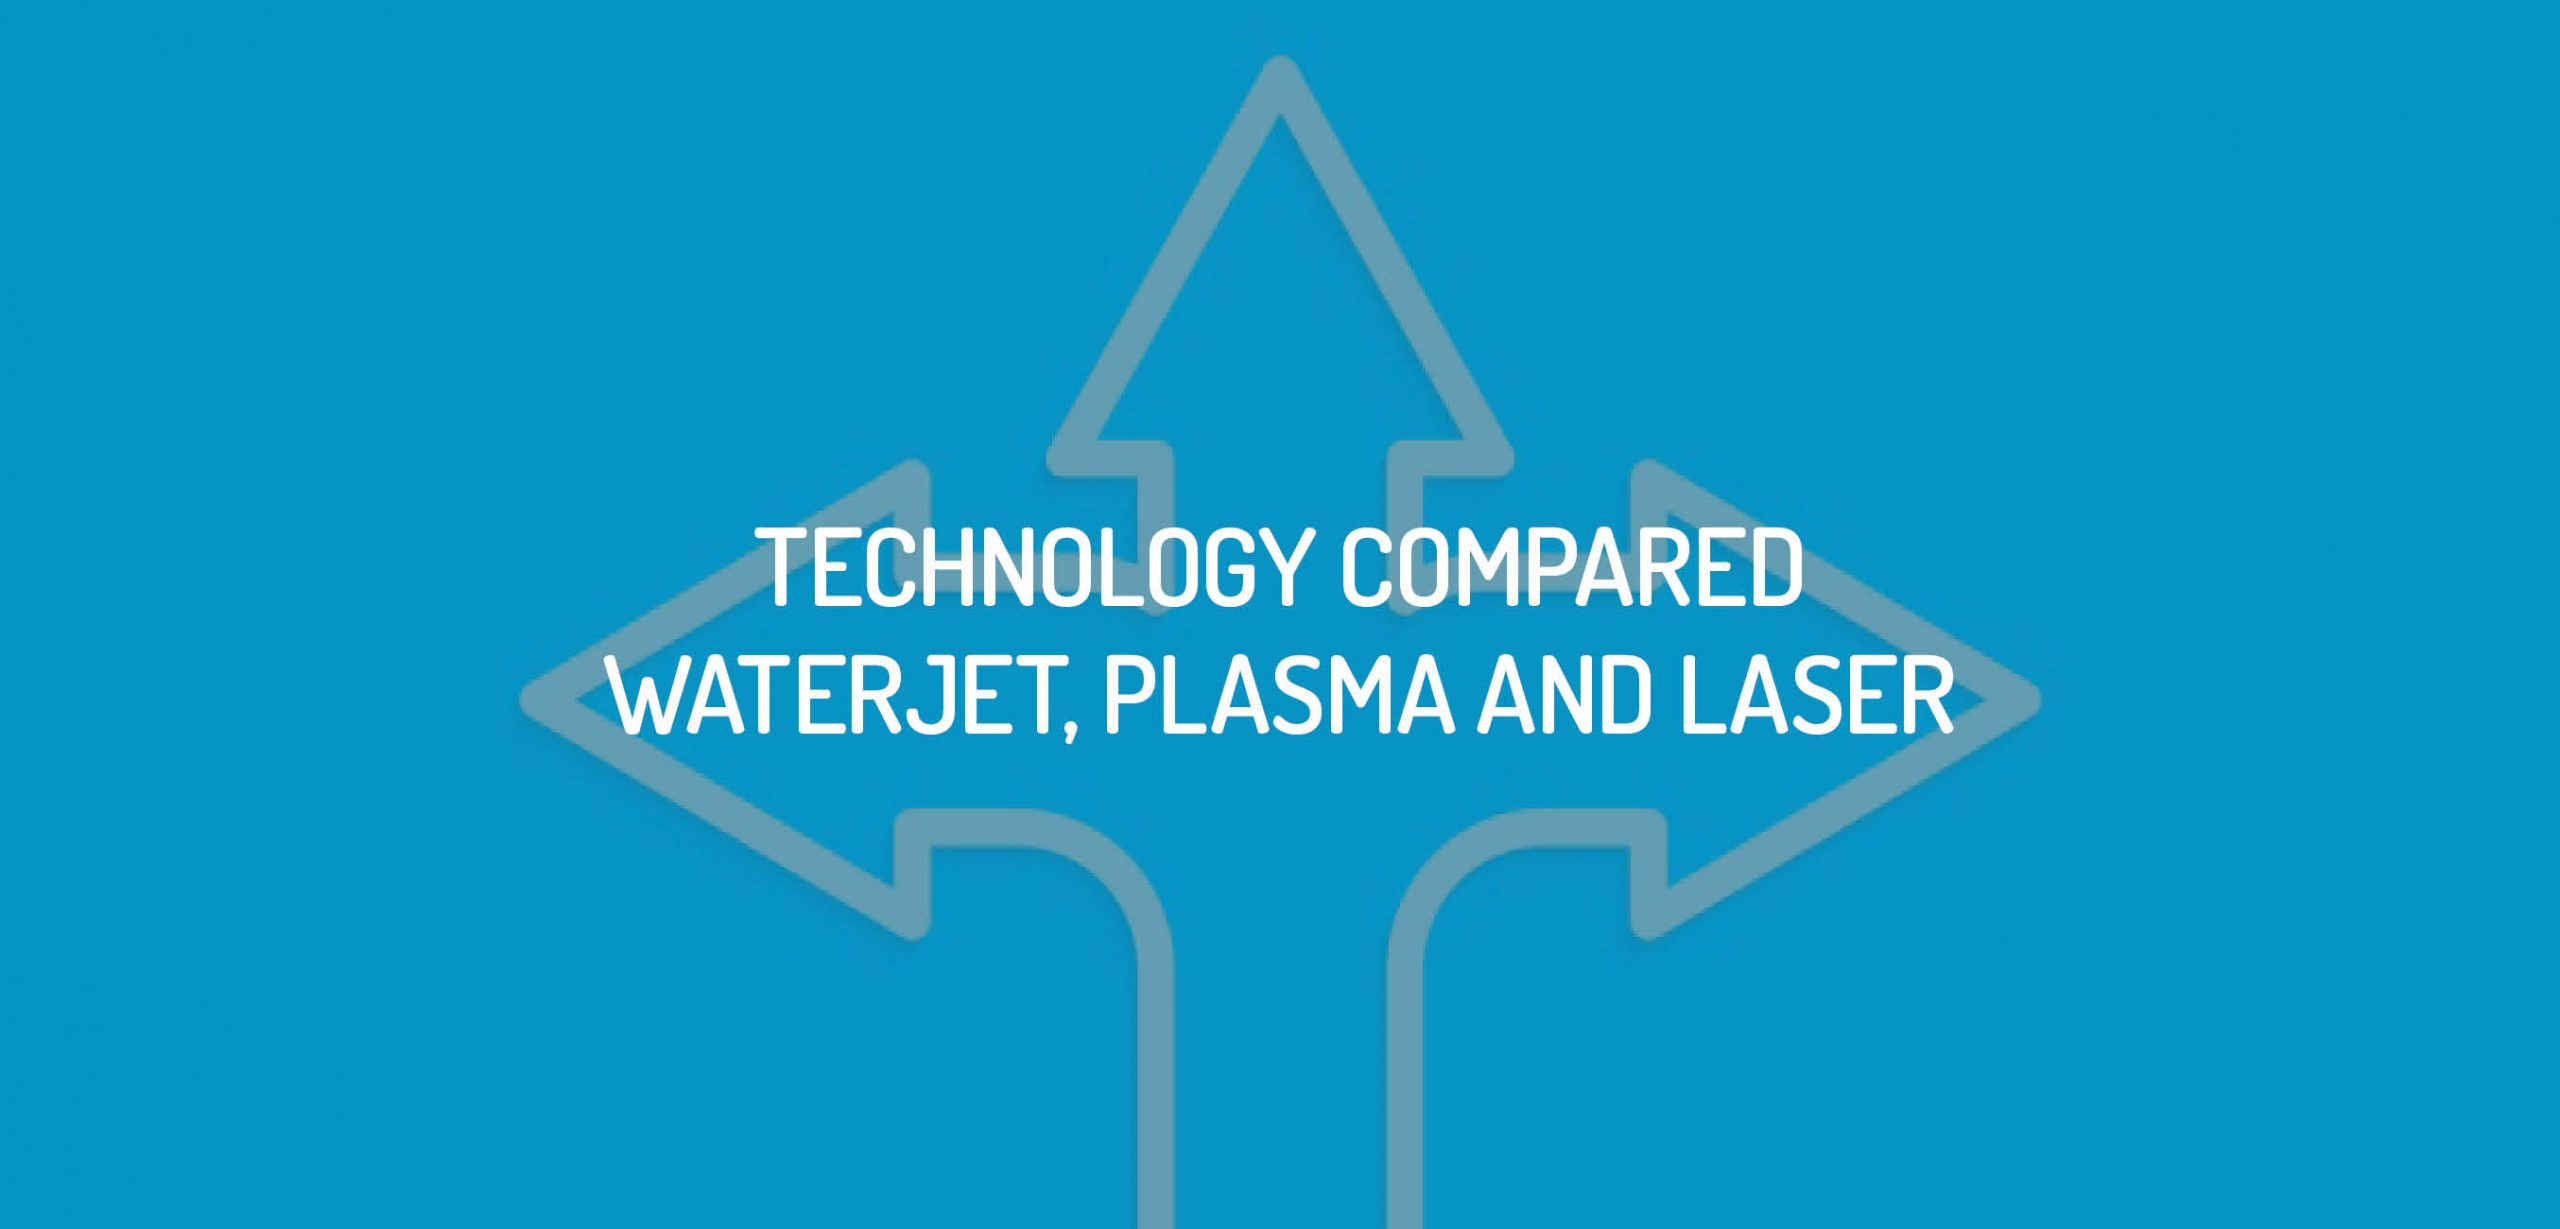 Waterjet Compared to Laser and Plasma